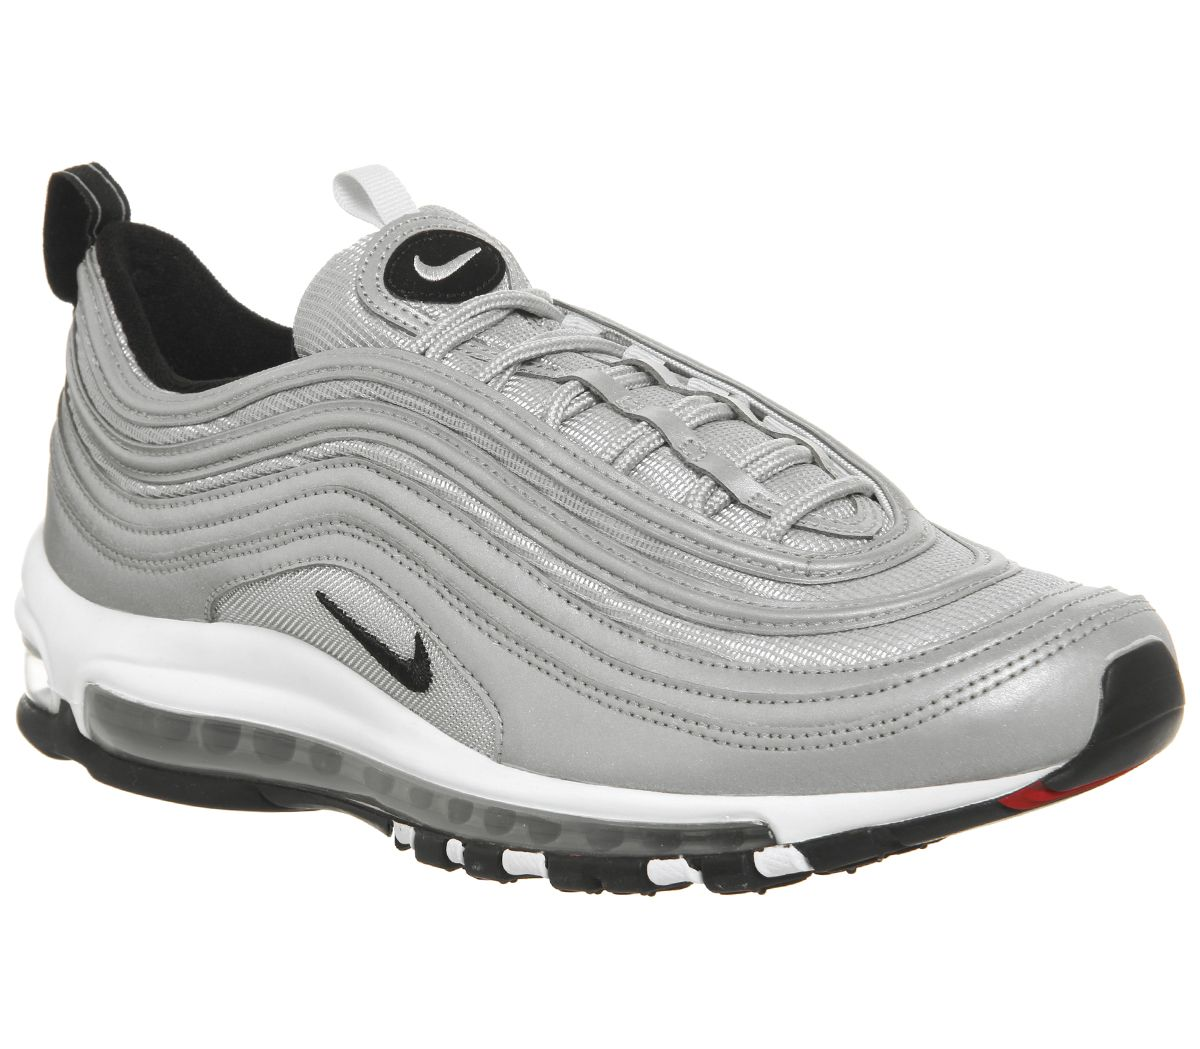 d60371fdd3 Nike Air Max 97 Trainers Reflective Silver Black Pure Platinum - His ...